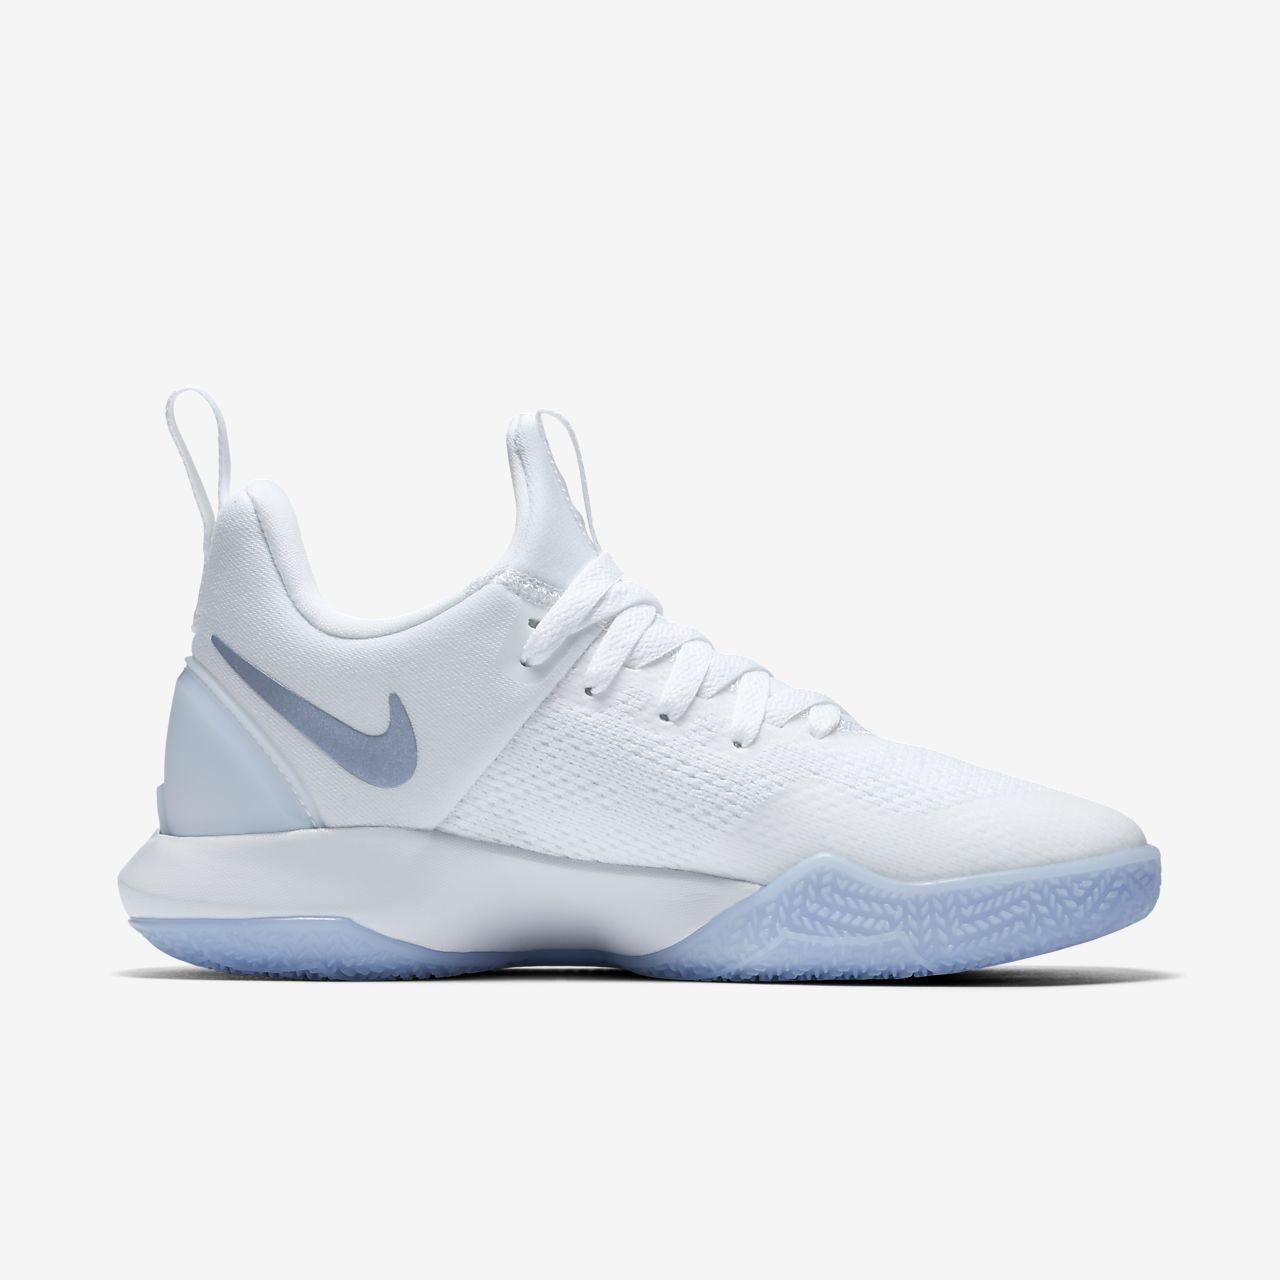 ... Nike Zoom Shift Women's Basketball Shoe